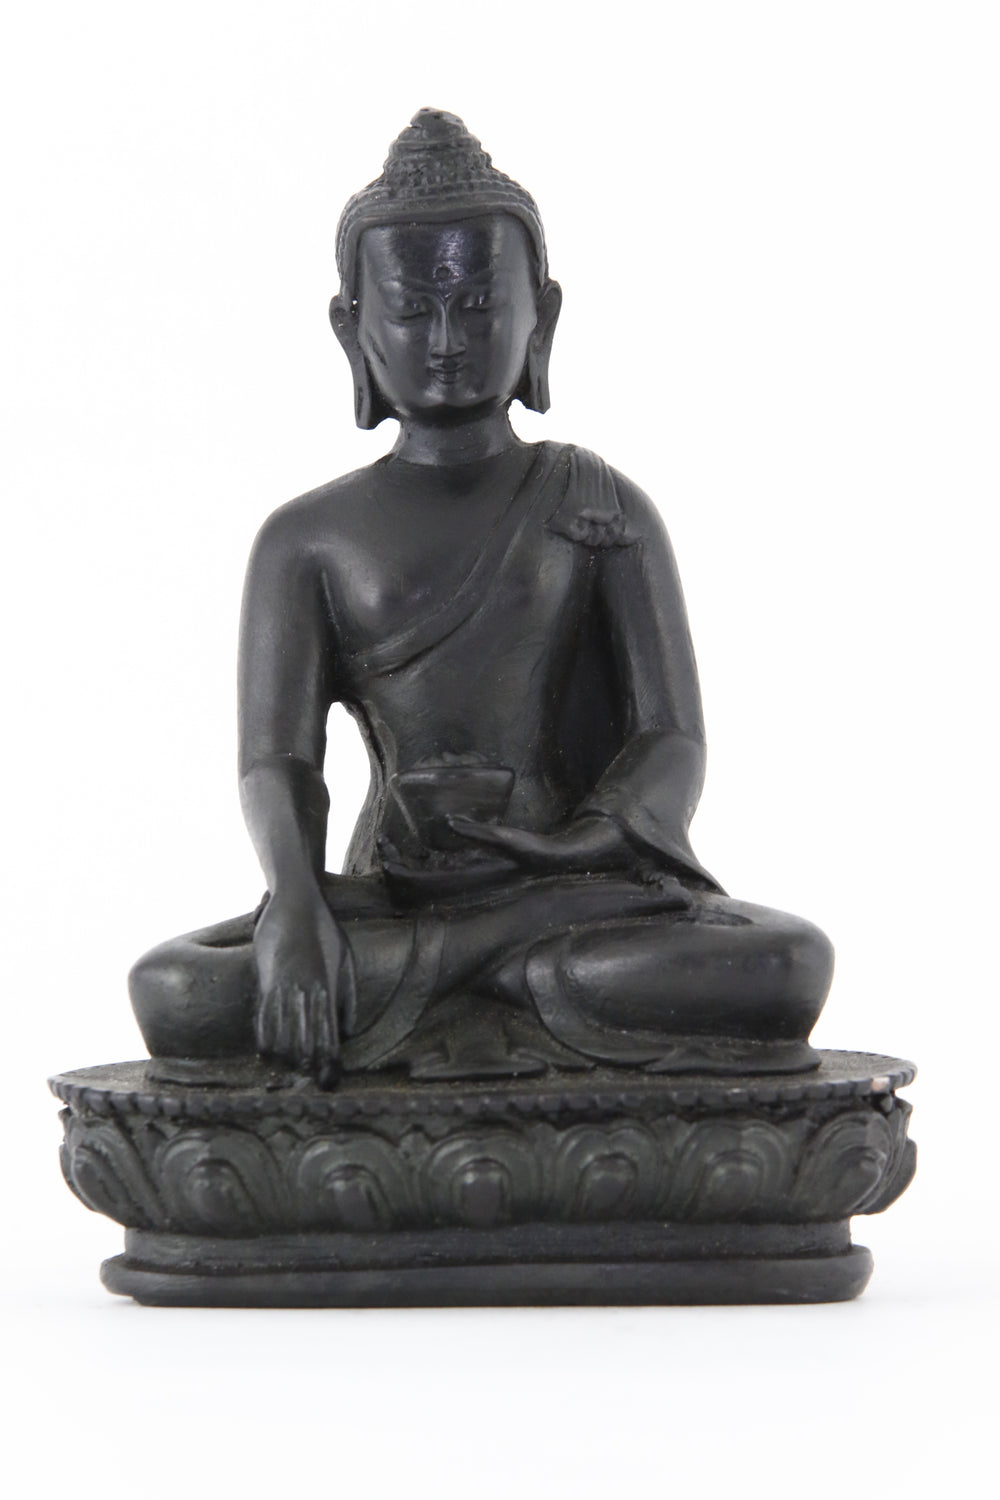 EARTH TOUCHING BUDDHA STATUE DARK MEDIUM SIZE FRONT VIEW